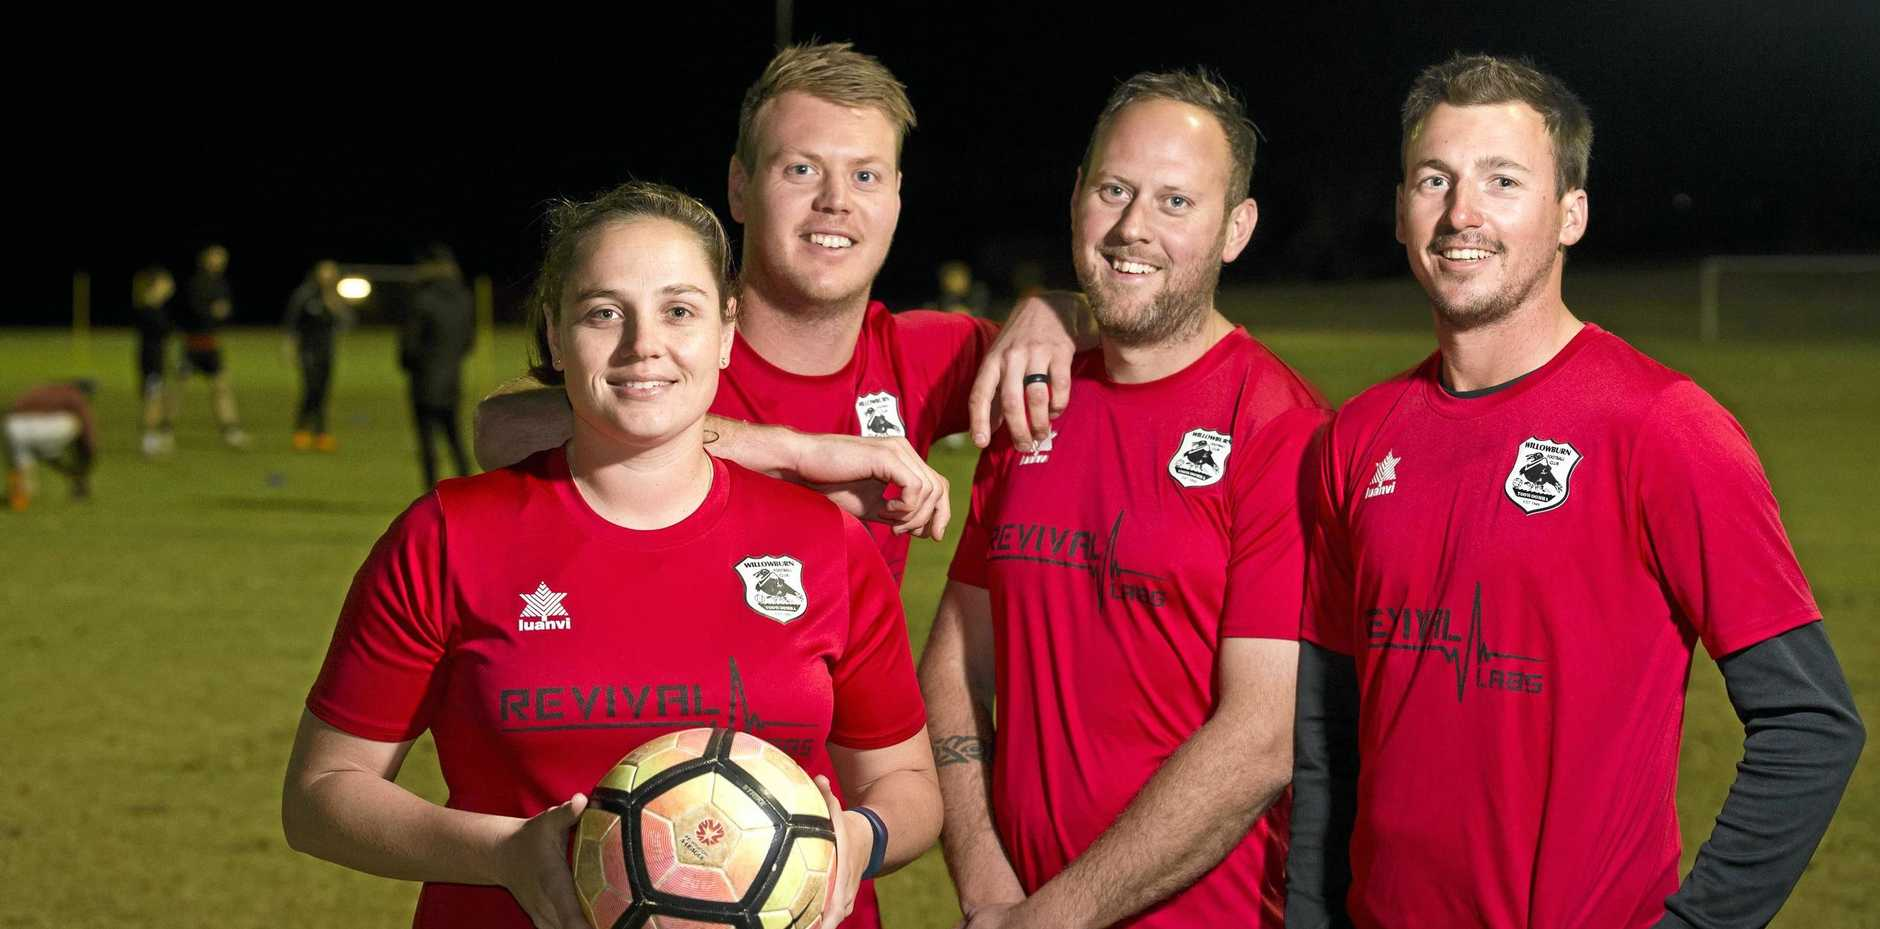 FINAL COUNTDOWN: Willowburn FC players (from left) Kiama Gray (Premier Women), Brenton Gietzel (Championship), Brad McMurray (Conference) and Brodie Welch (Premier Men) are ready to captain their teams in the Toowoomba Football League grand final matches tomorrow.